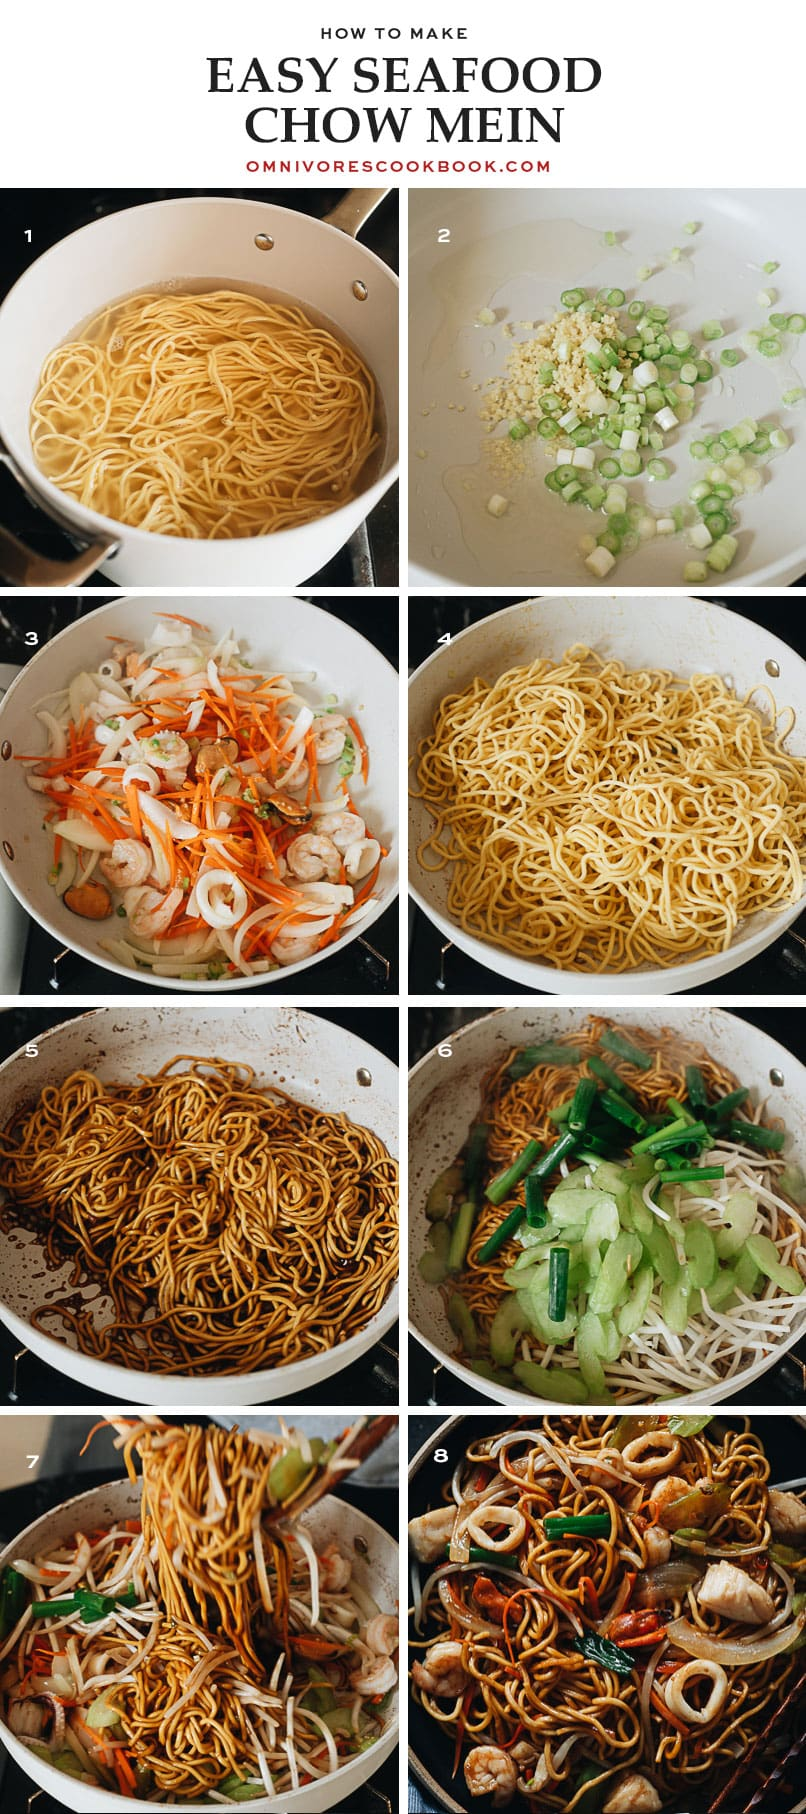 Seafood chow mein cooking step-by-step